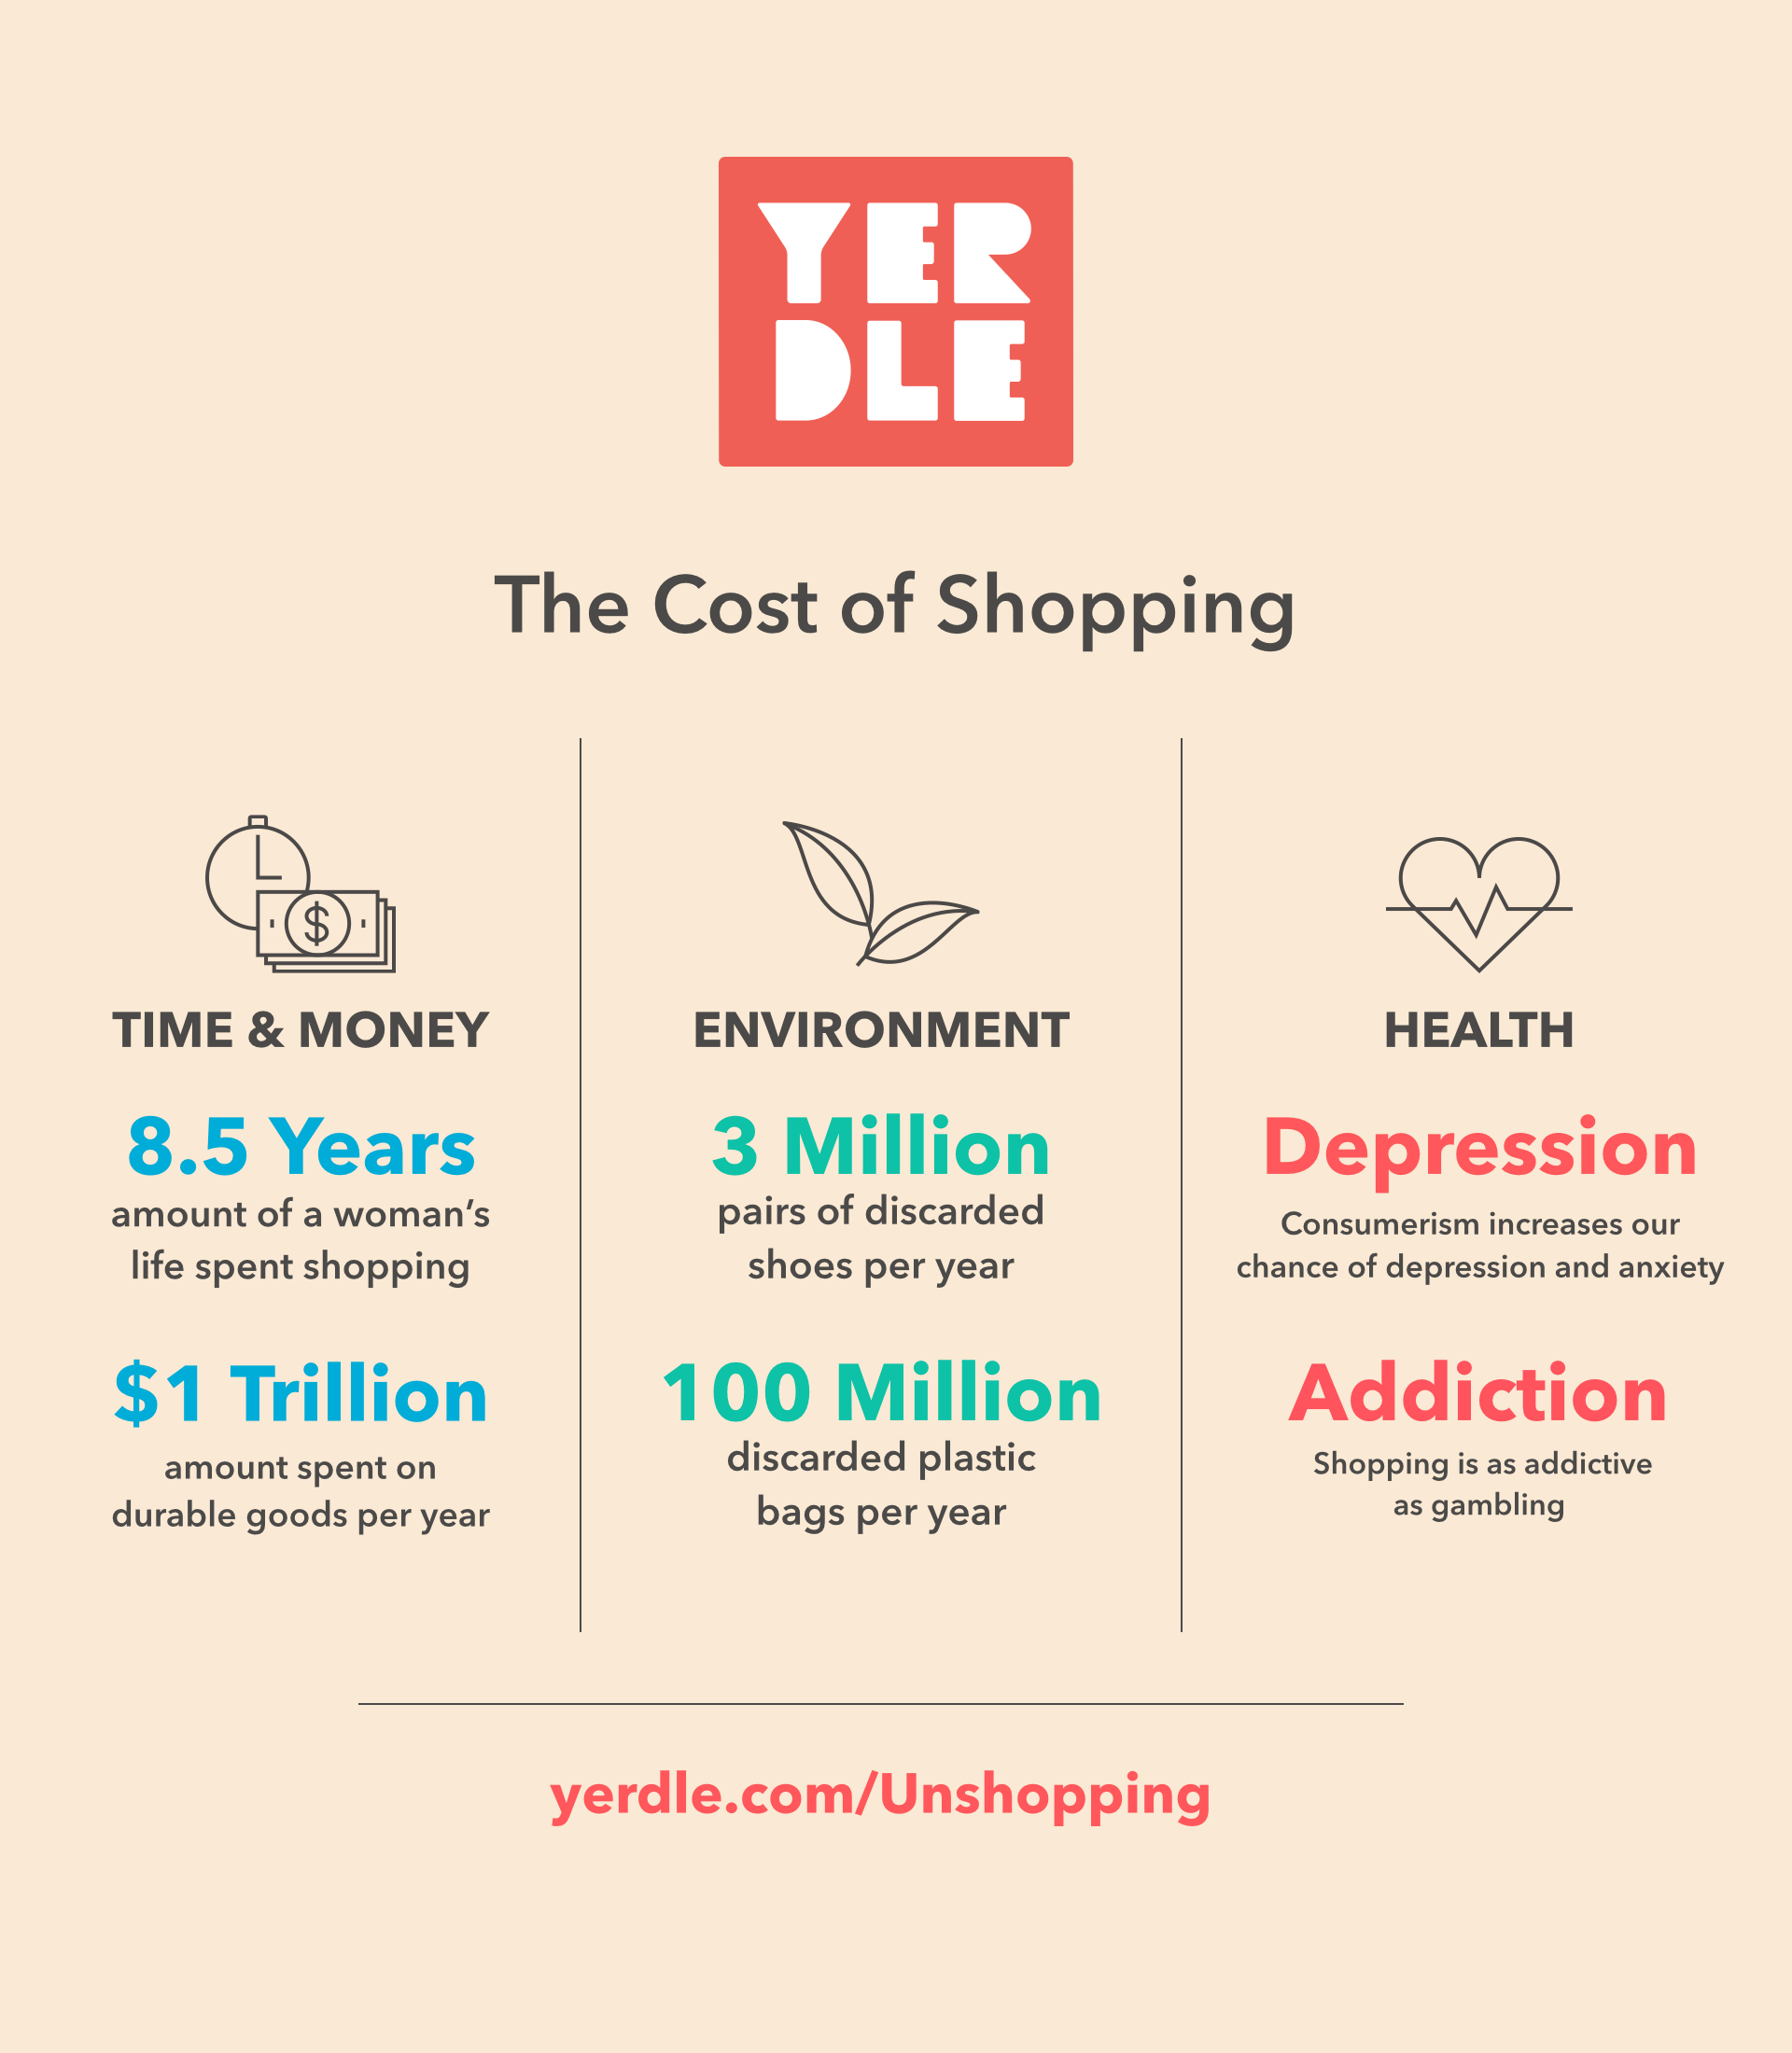 Yerdle The Cost of Shopping.001